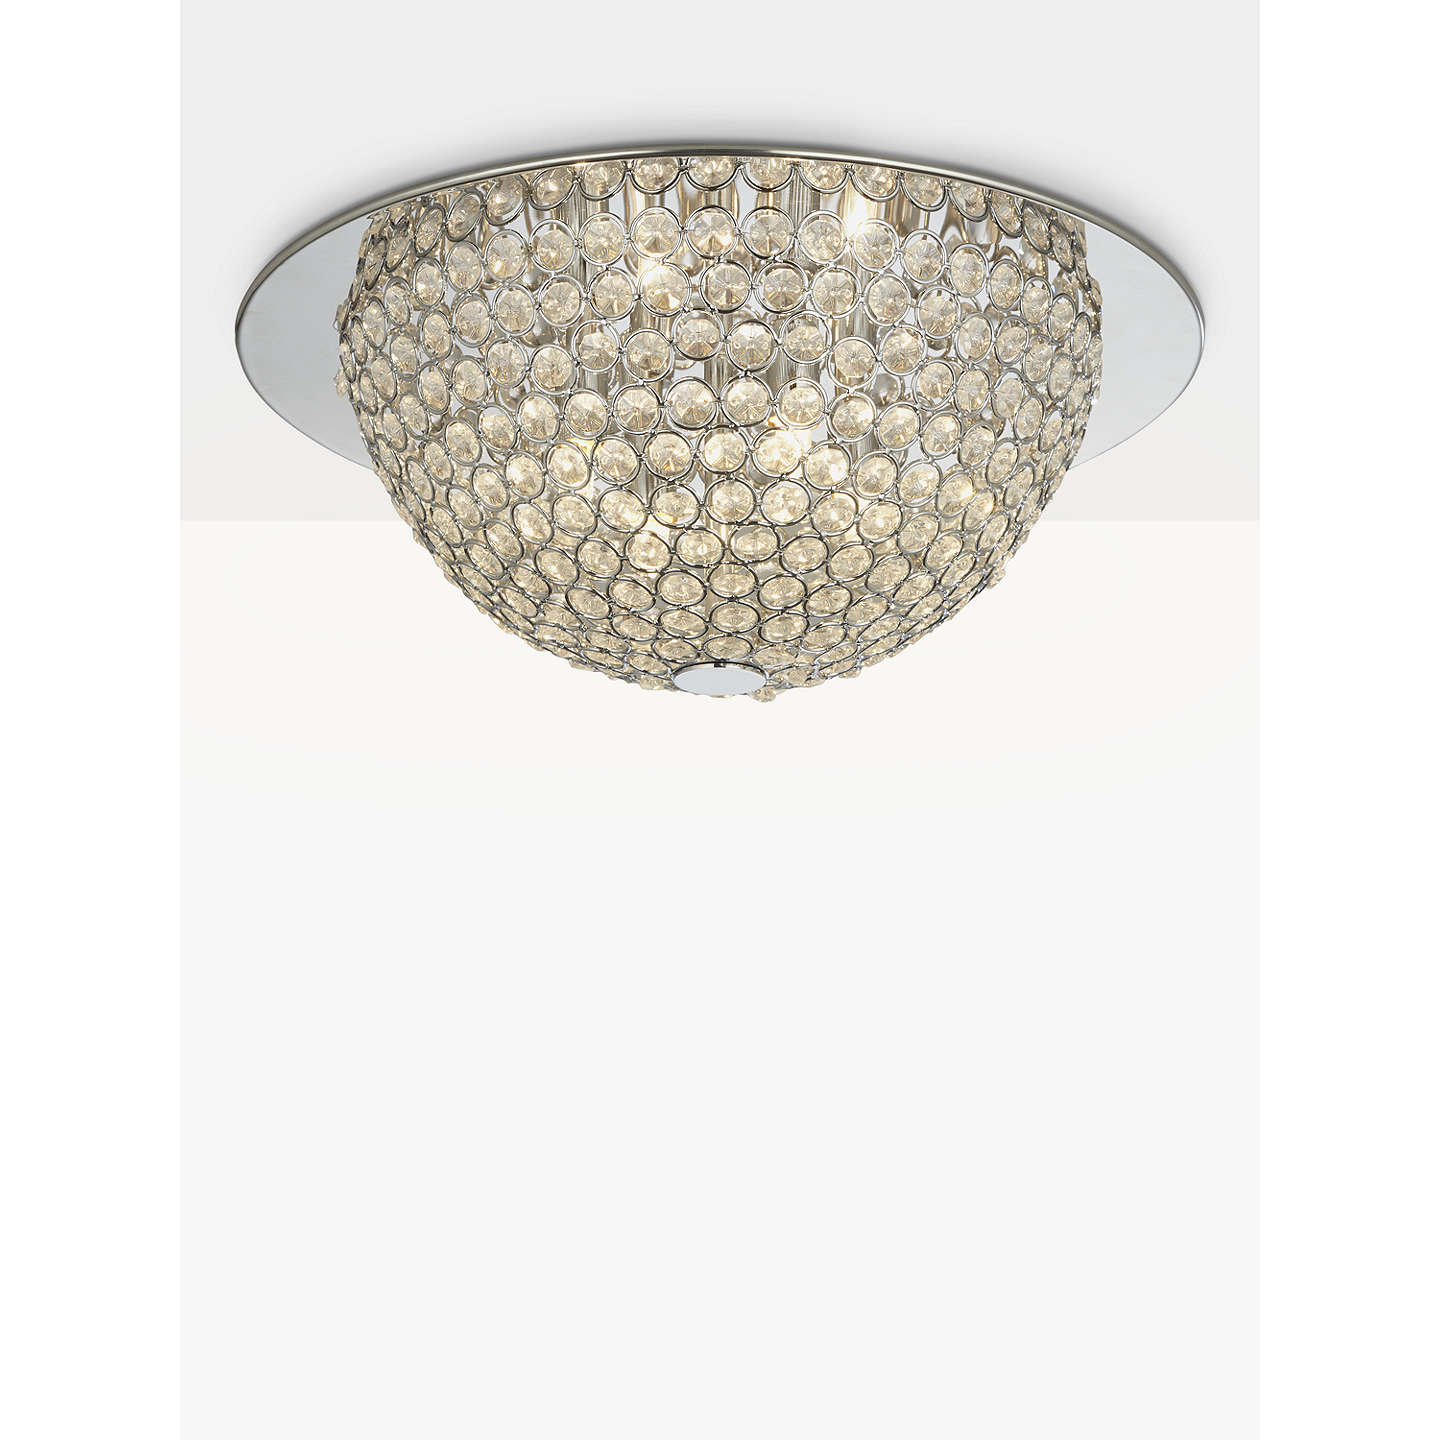 John lewis moon semi flush ceiling light silverclear at john lewis buyjohn lewis moon semi flush ceiling light silverclear online at johnlewis aloadofball Image collections